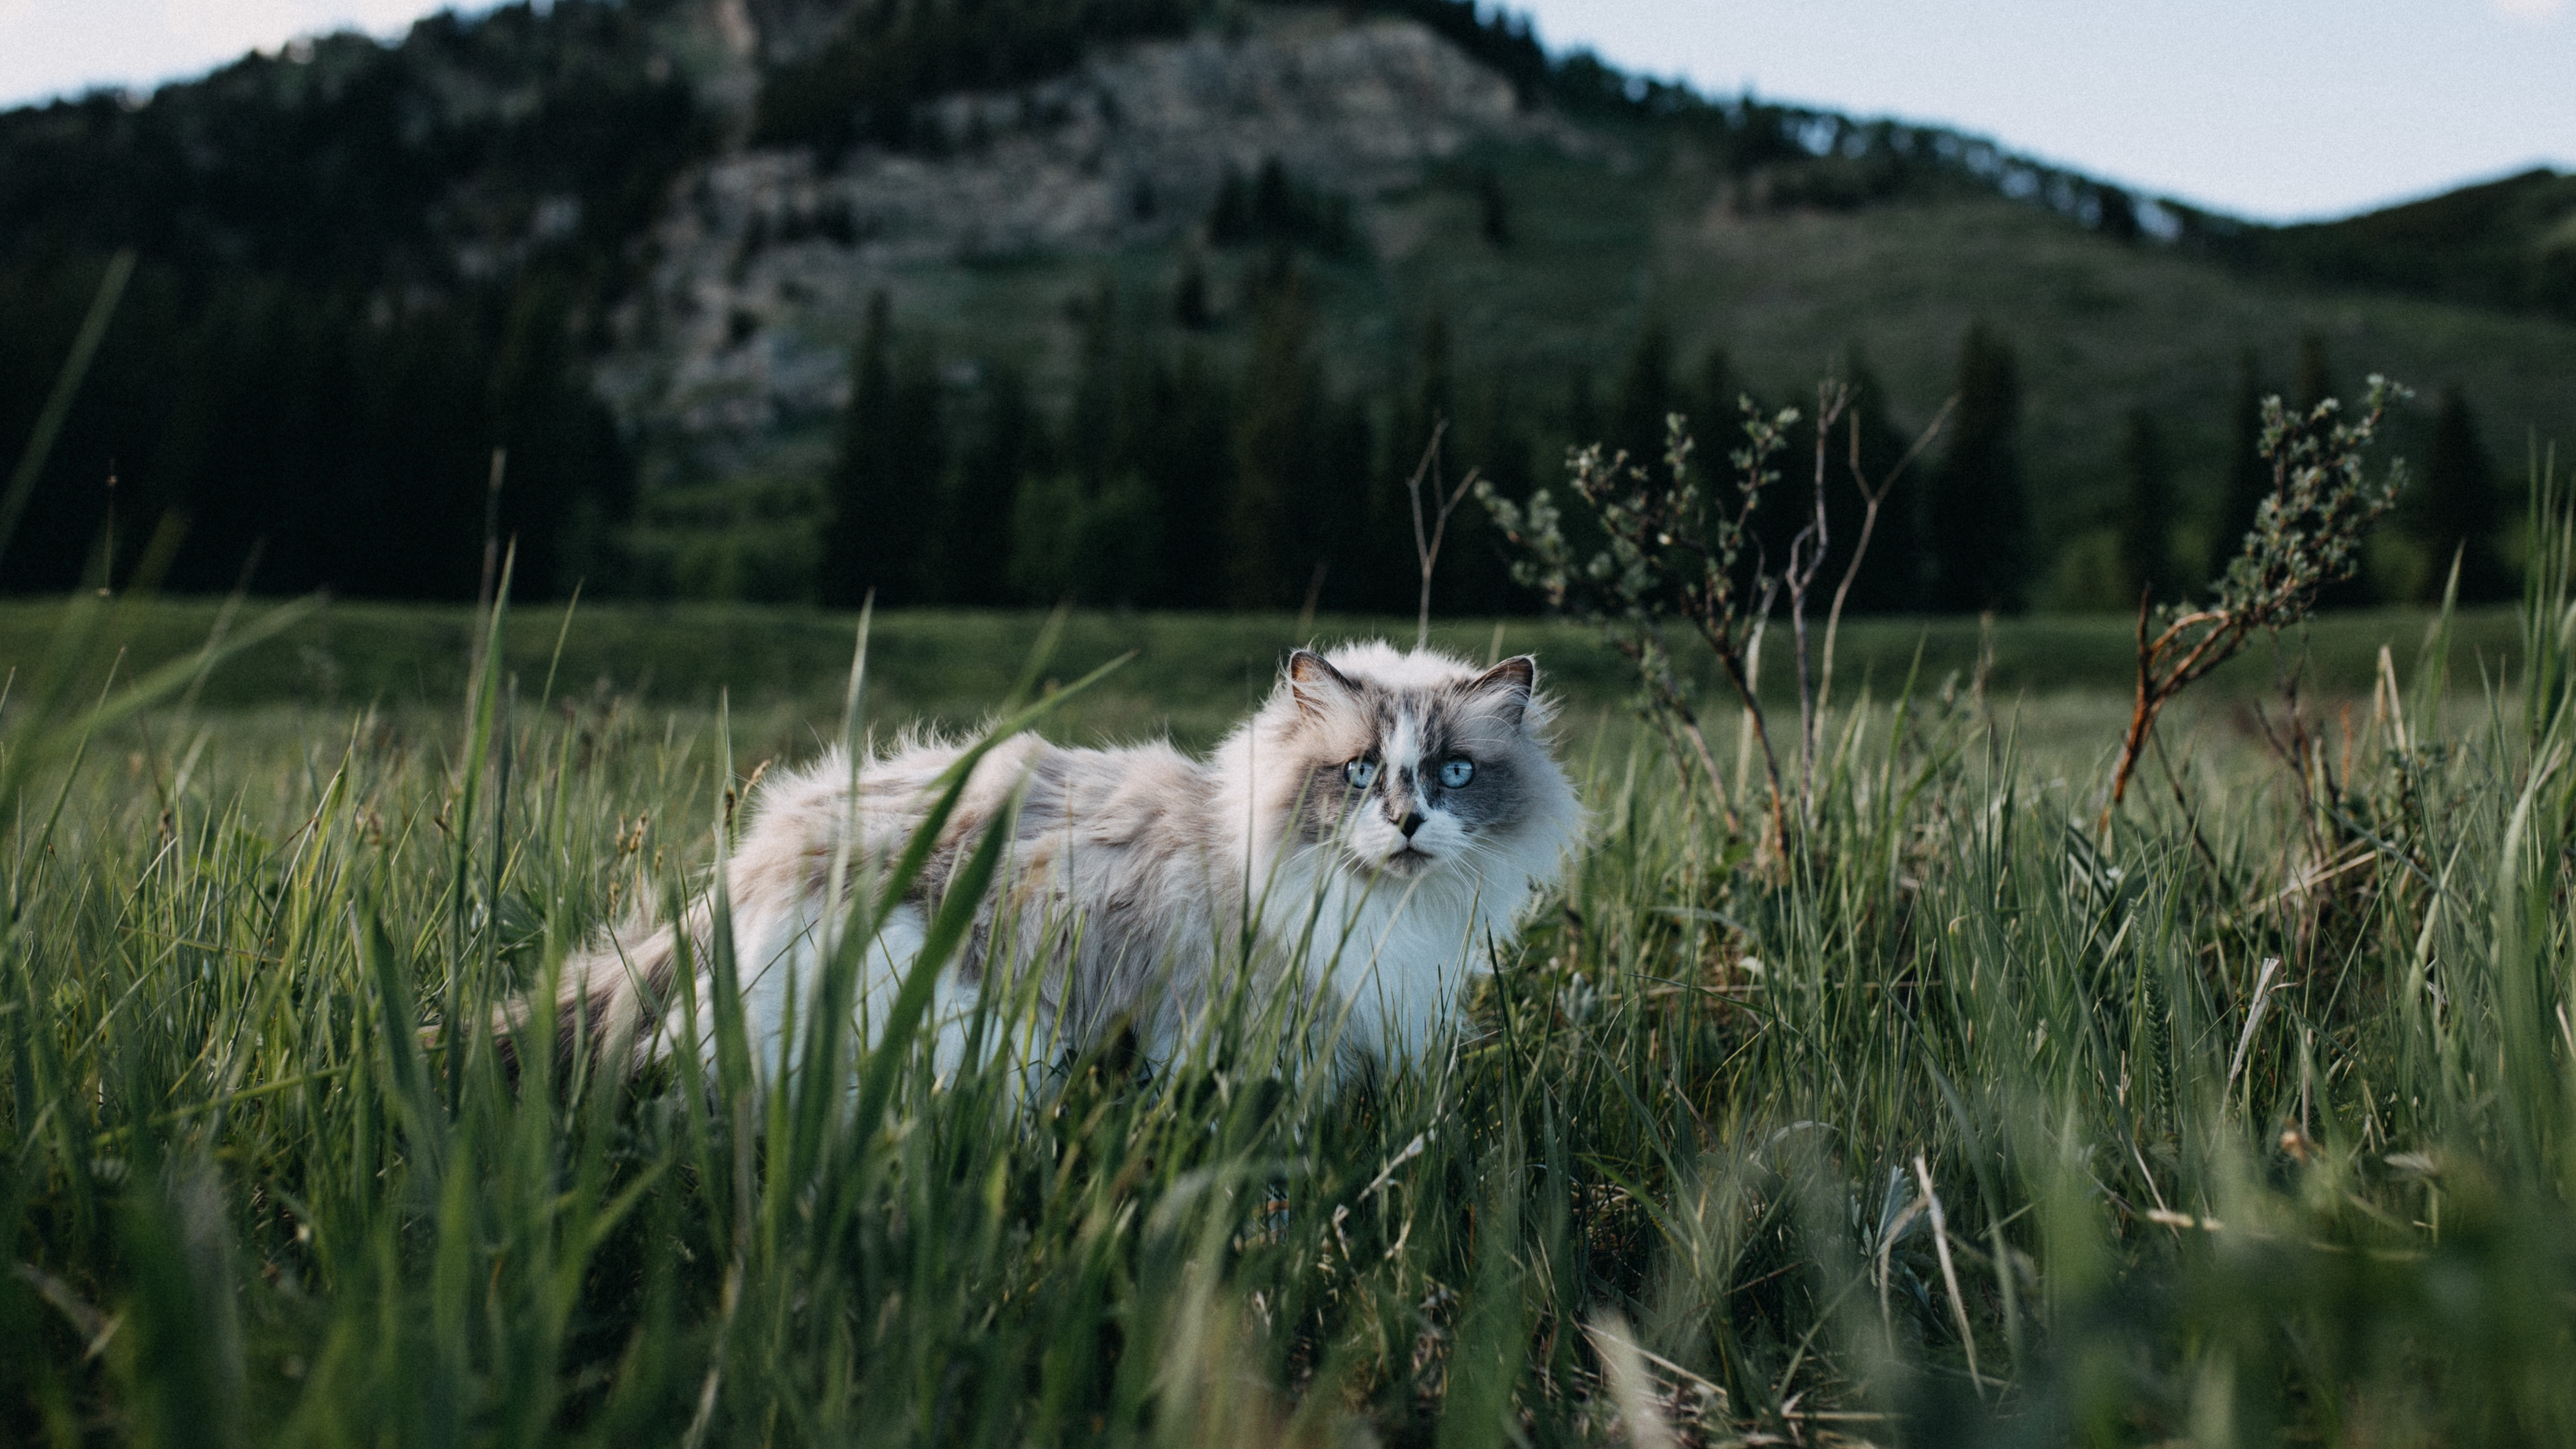 cat furry walk grass 4k 1542241403 - cat, furry, walk, grass 4k - walk, furry, Cat